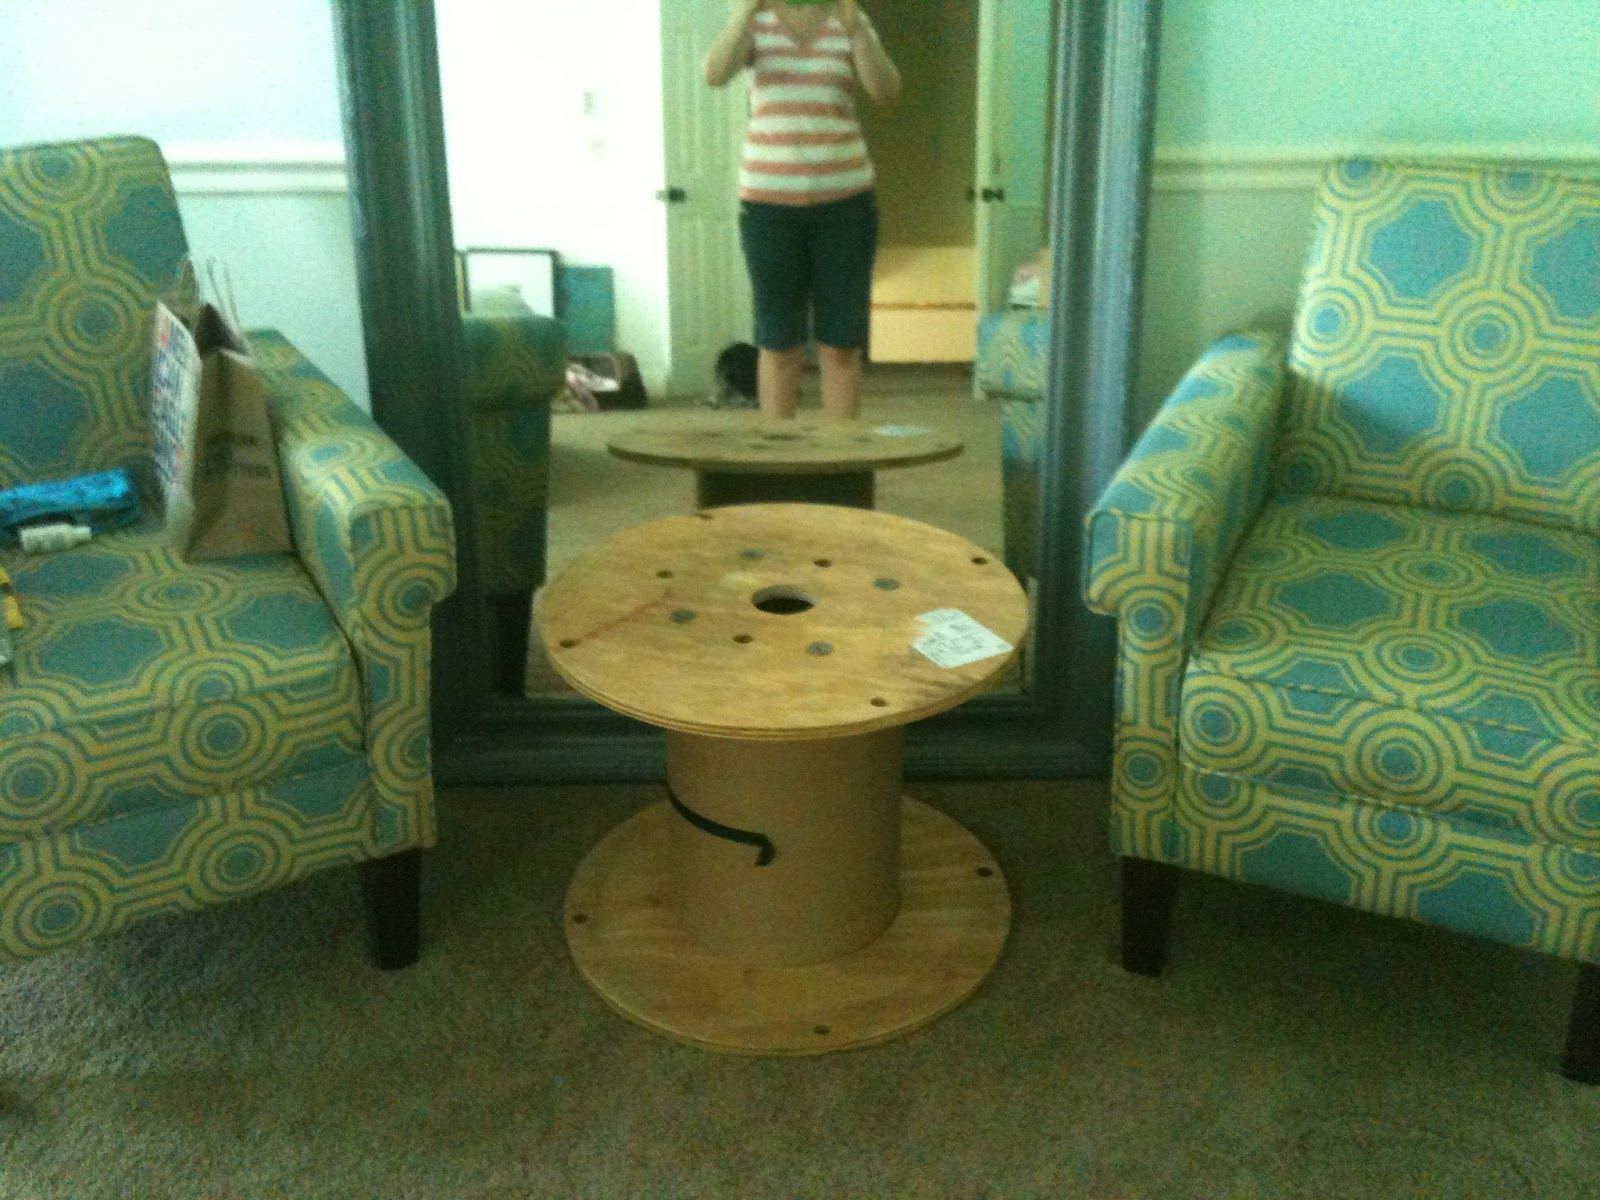 i am momma - hear me roar: where to find a wooden spool and how to